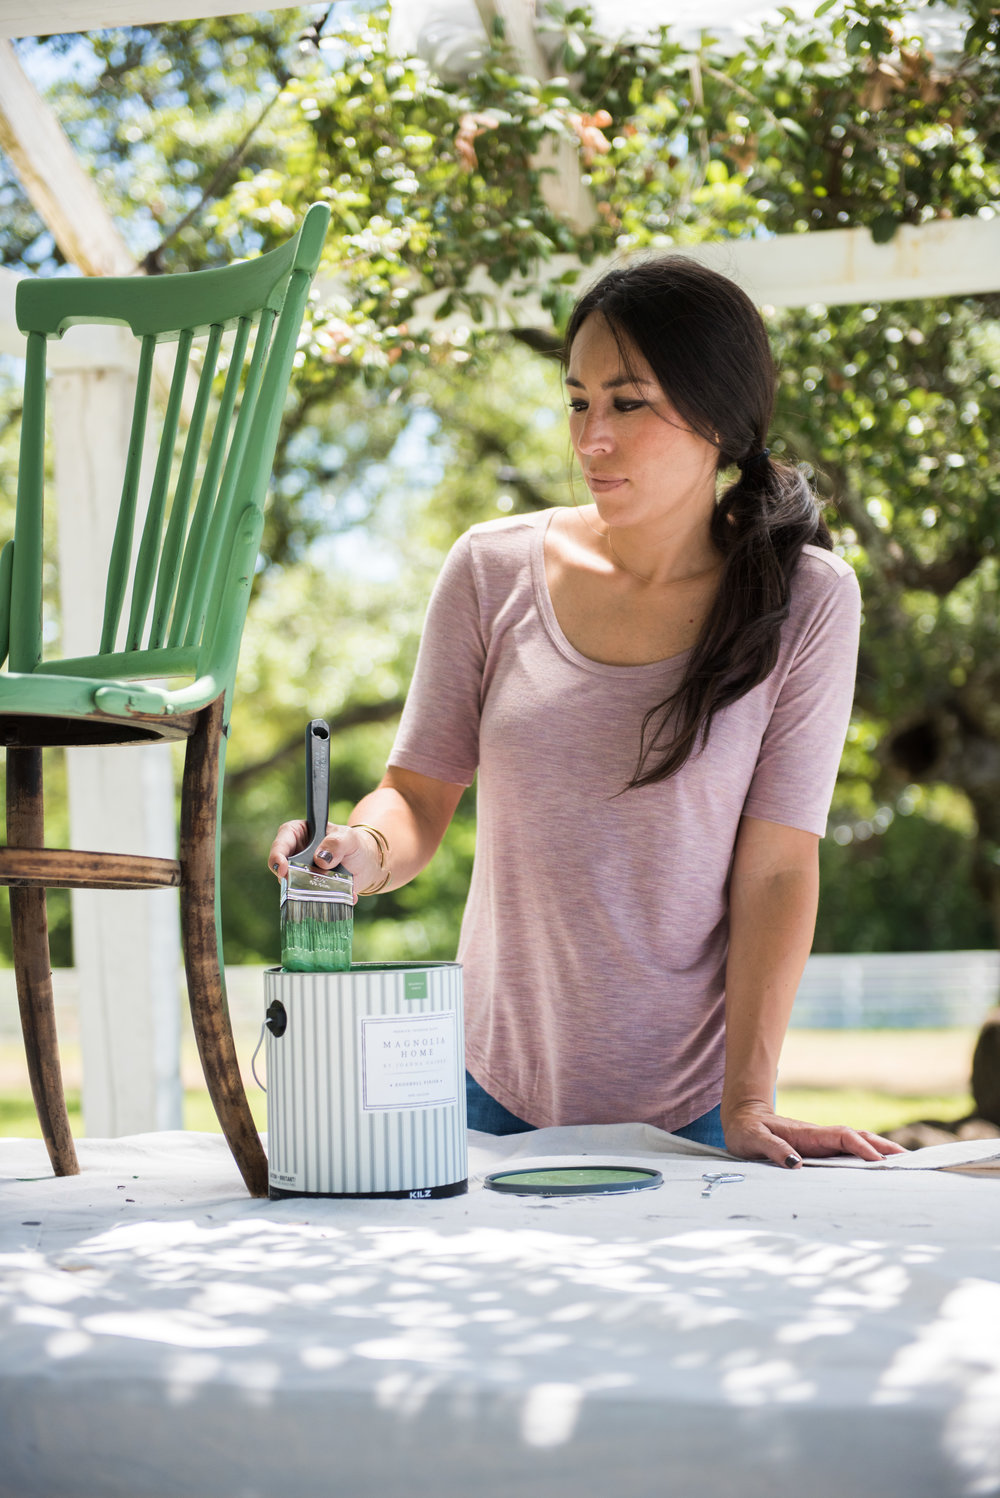 Miller Paint is now the place to find Magnolia Home by Joanna Gaines Paint in the Pacific Northwest. Photo courtesy of Magnolia Home by Joanna Gaines Paint.